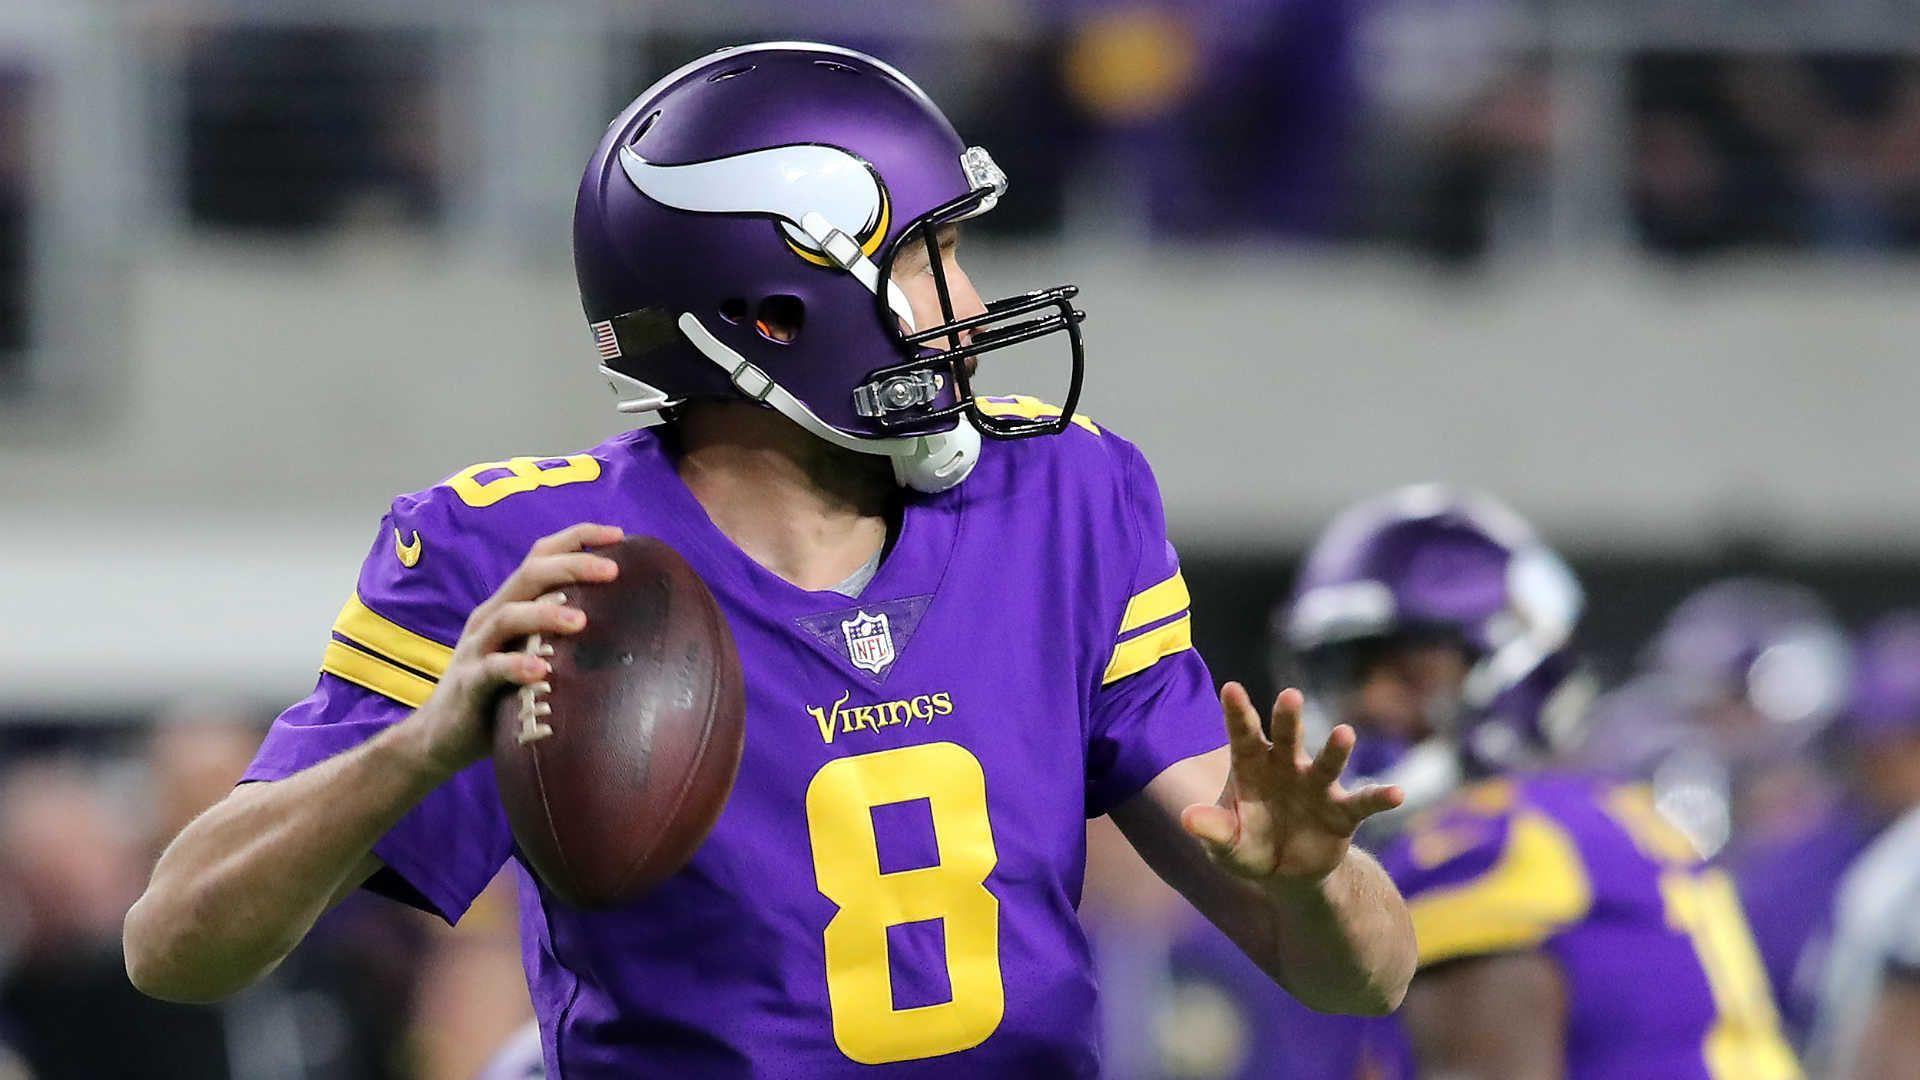 Vikings' Sam Bradford out, Case Keenum to start versus Steelers ...